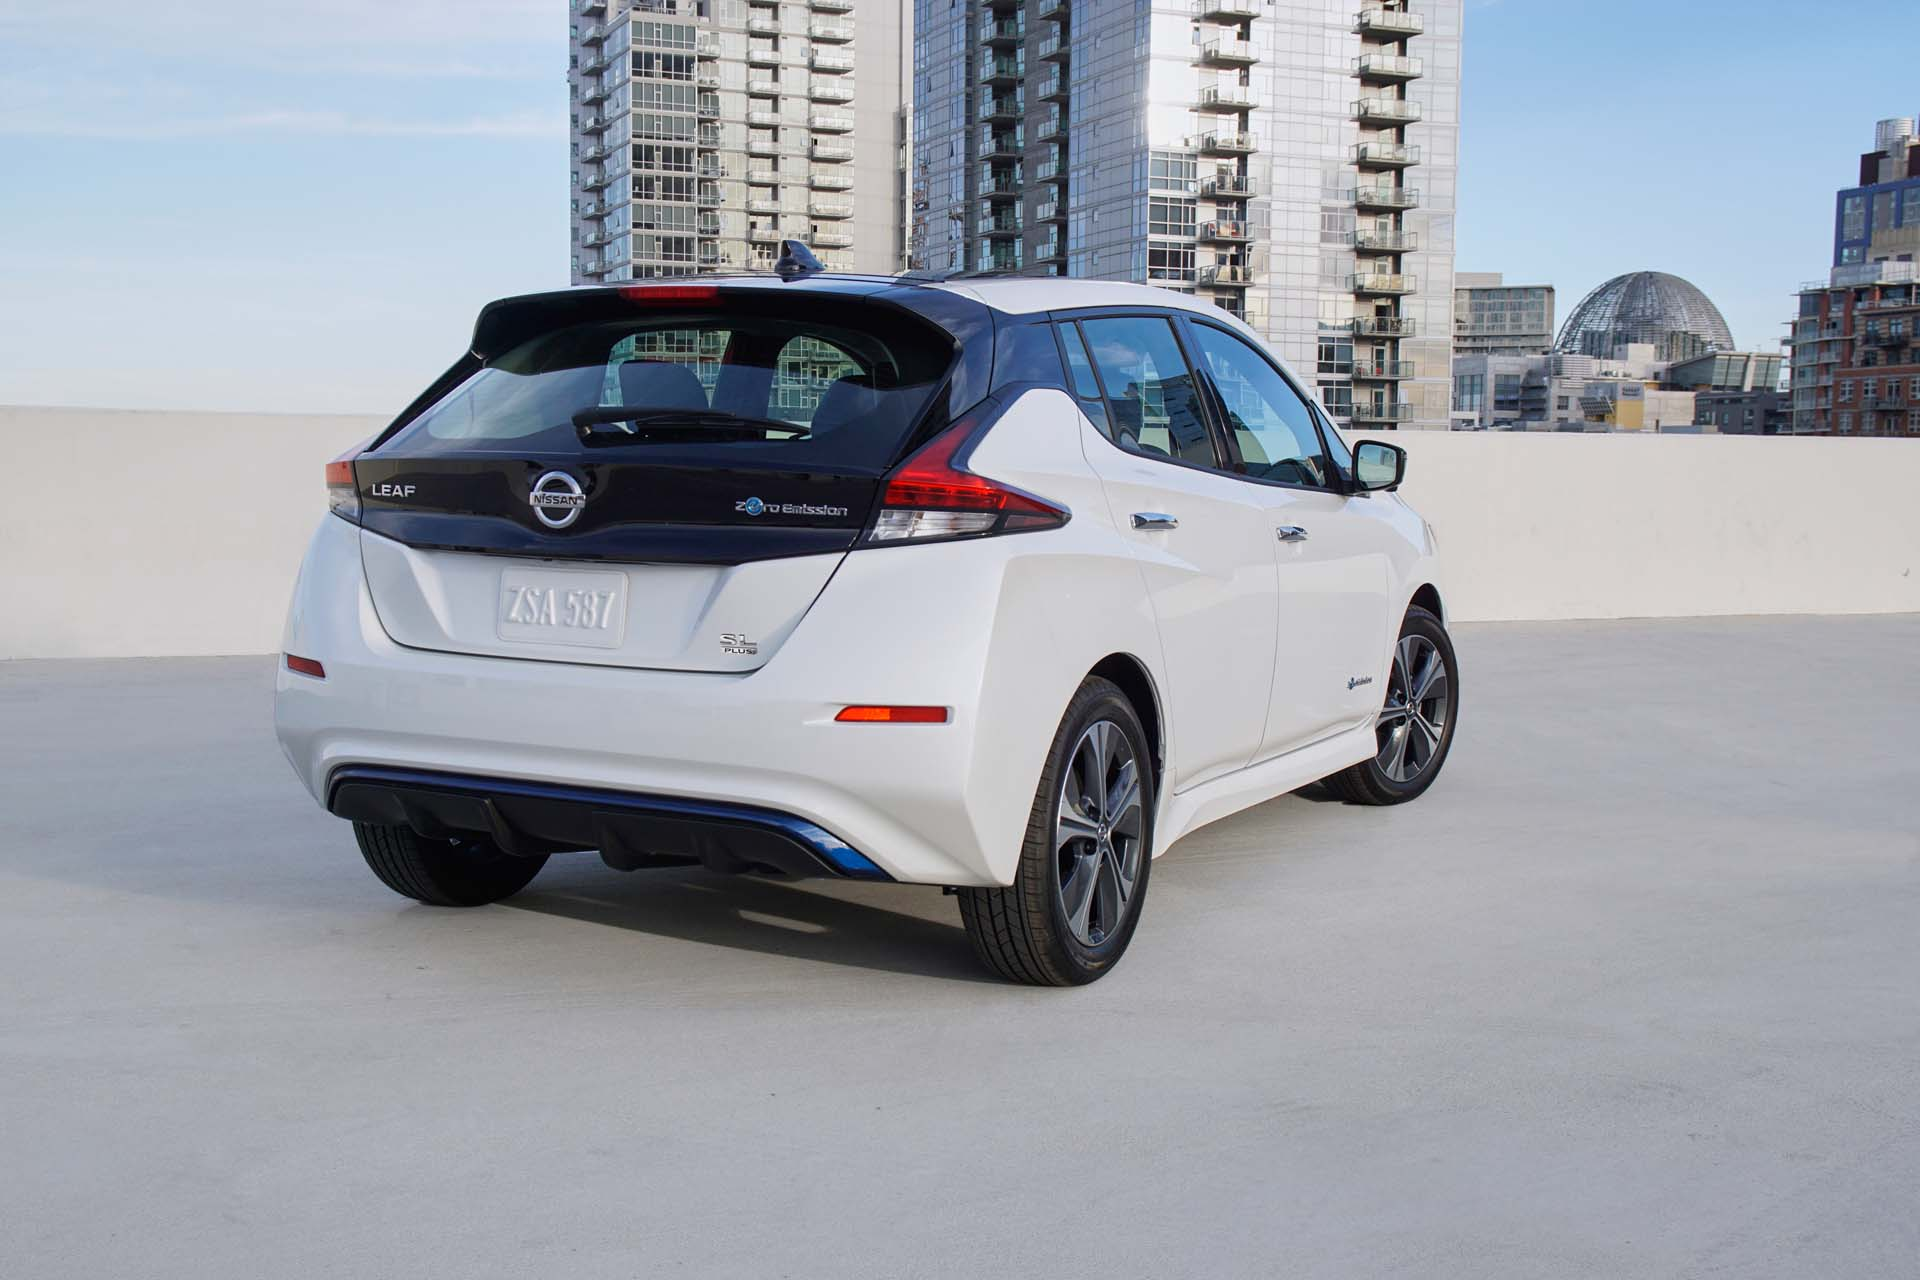 56 All New 2020 Nissan Leaf Range Overview